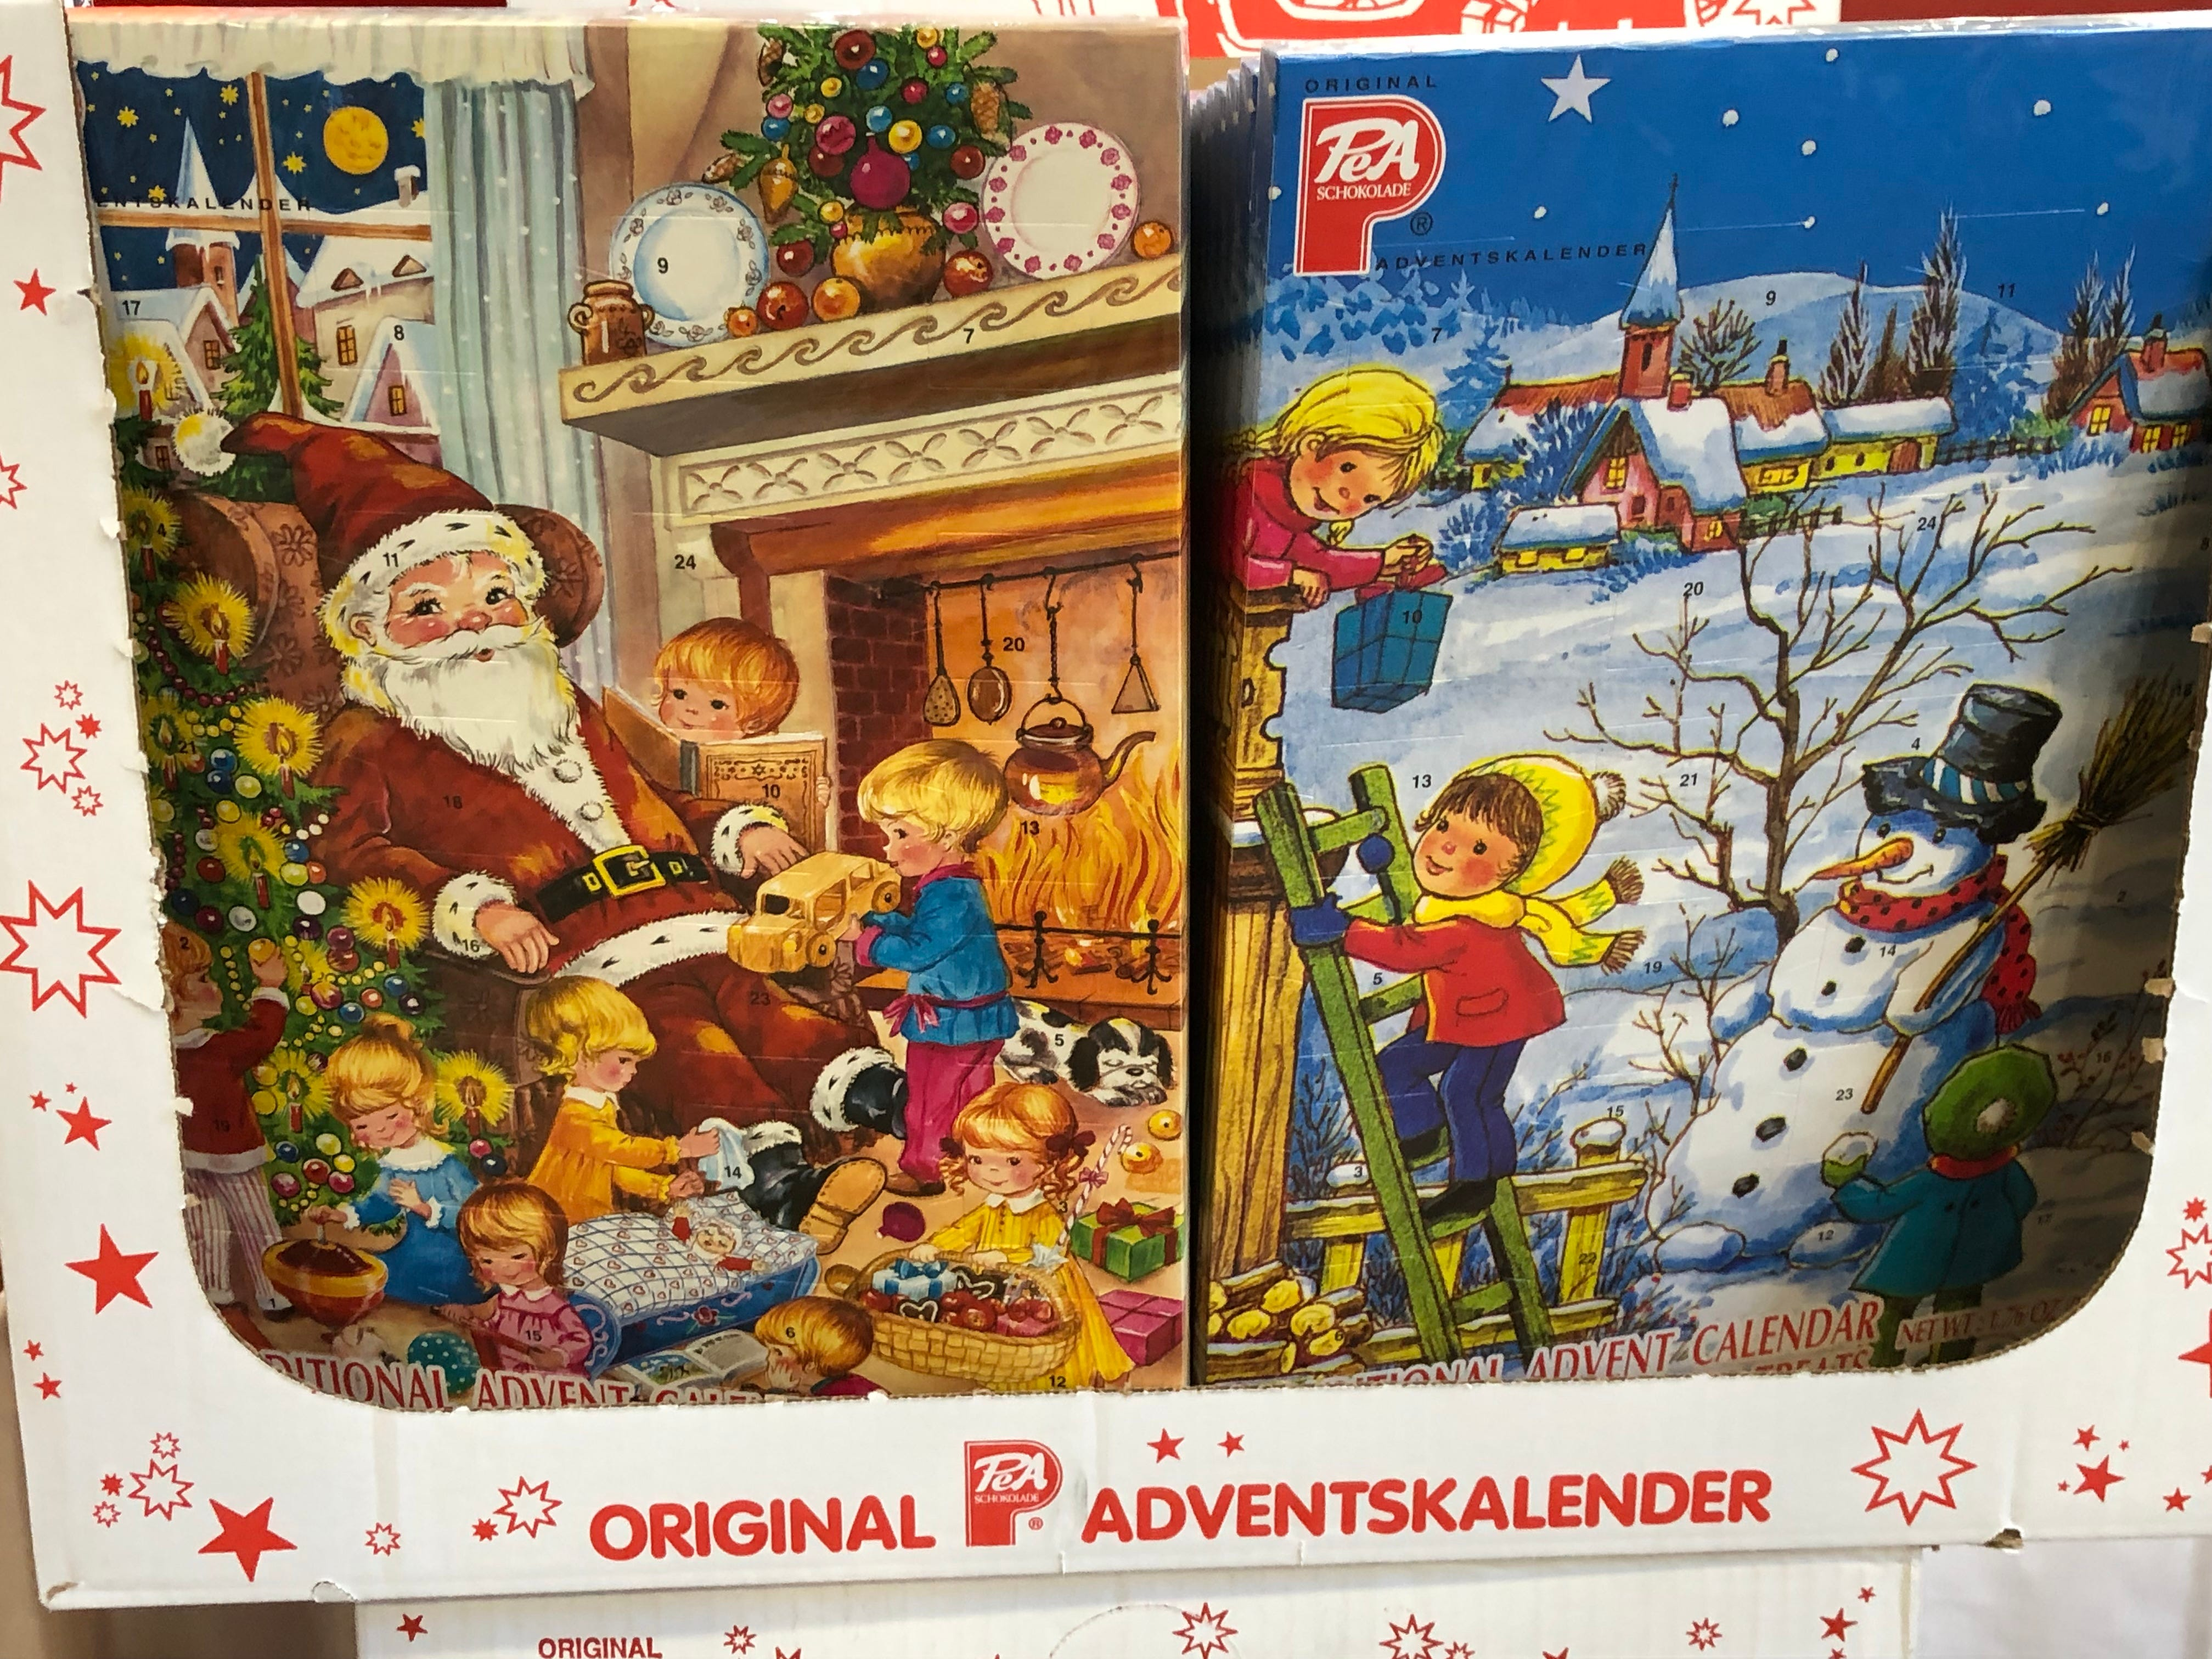 Advent calendars are still around, and they're a fun way to satisfy your sweet tooth every day while simultaneously not overdoing it.